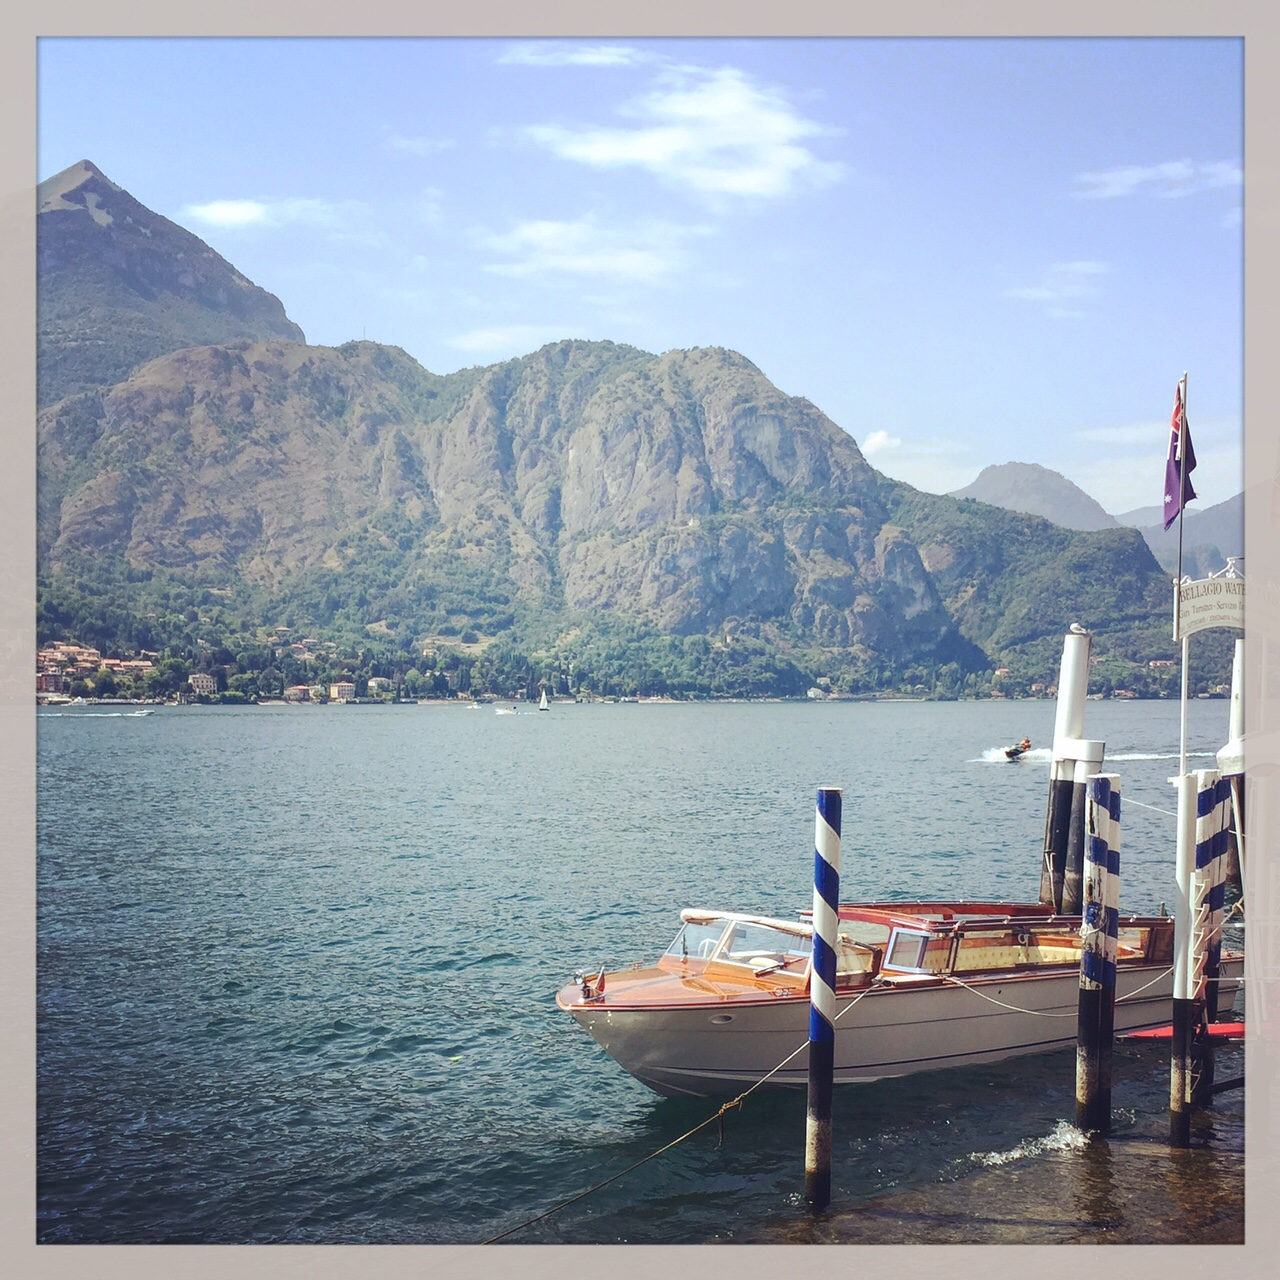 Lake Como, Italy on Morso Travel's food and wine tours of Italy.